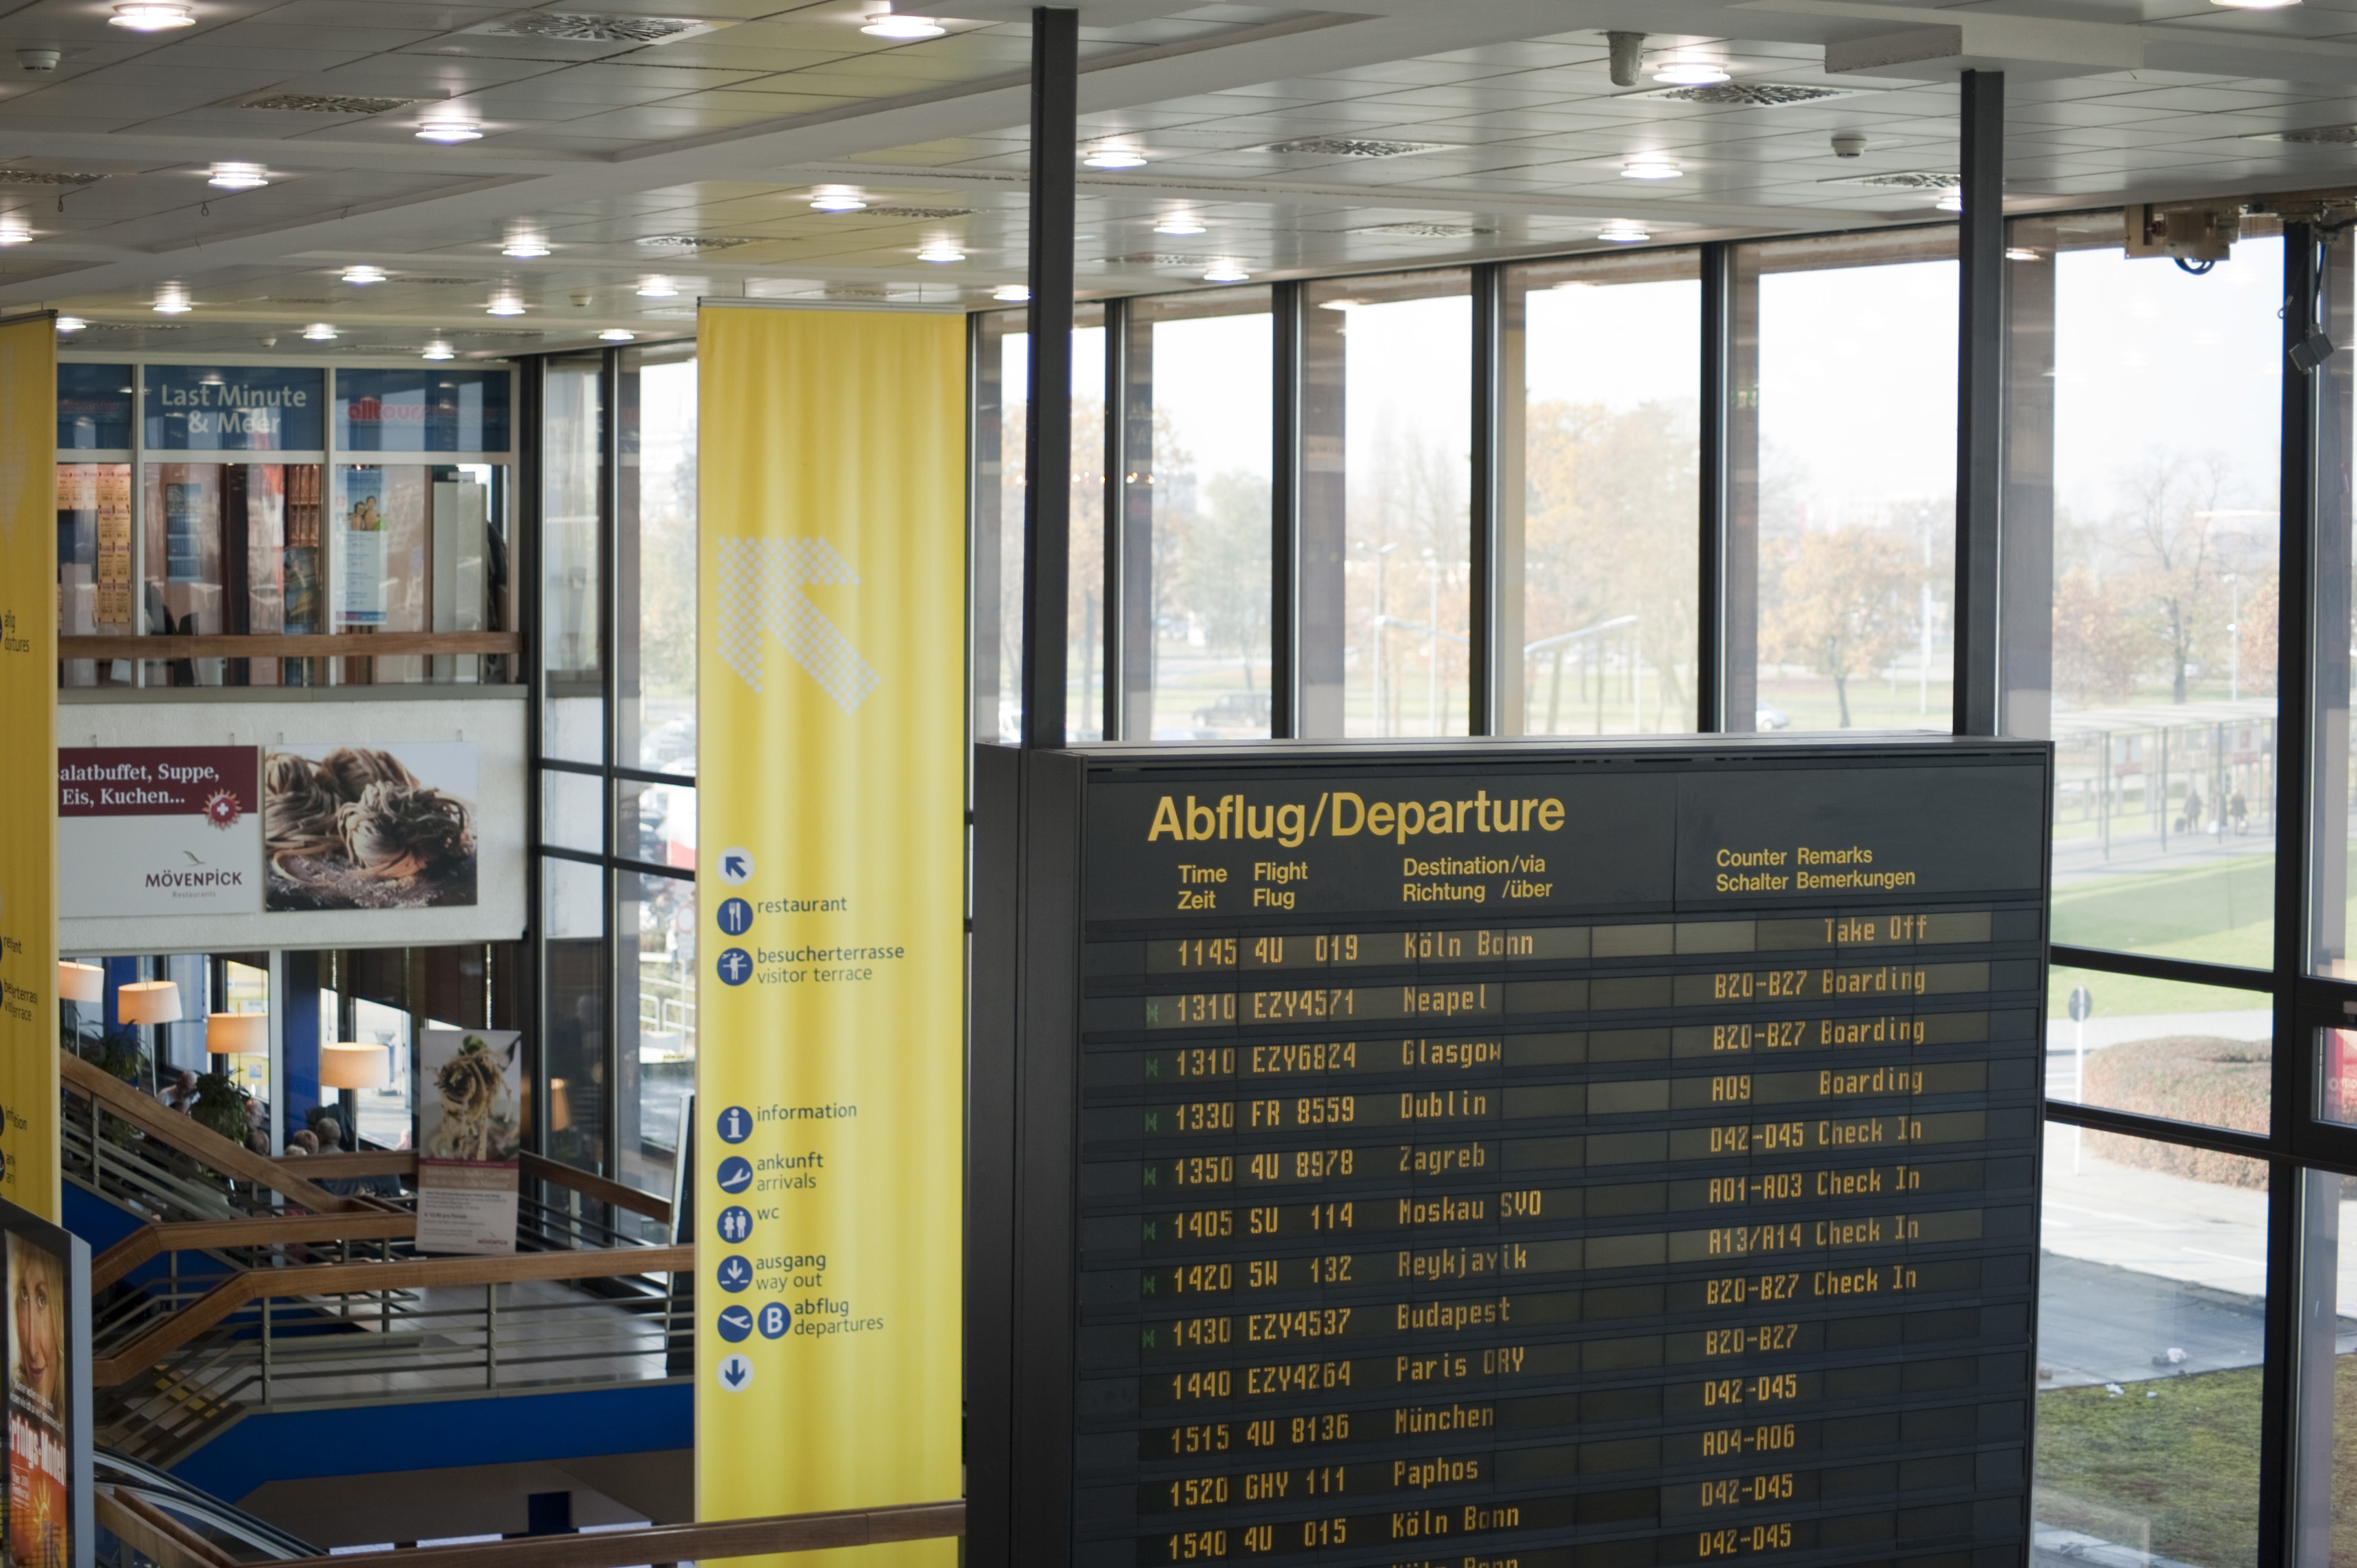 Departure Board at the Second Floor of Modern Architectural Airport Building.